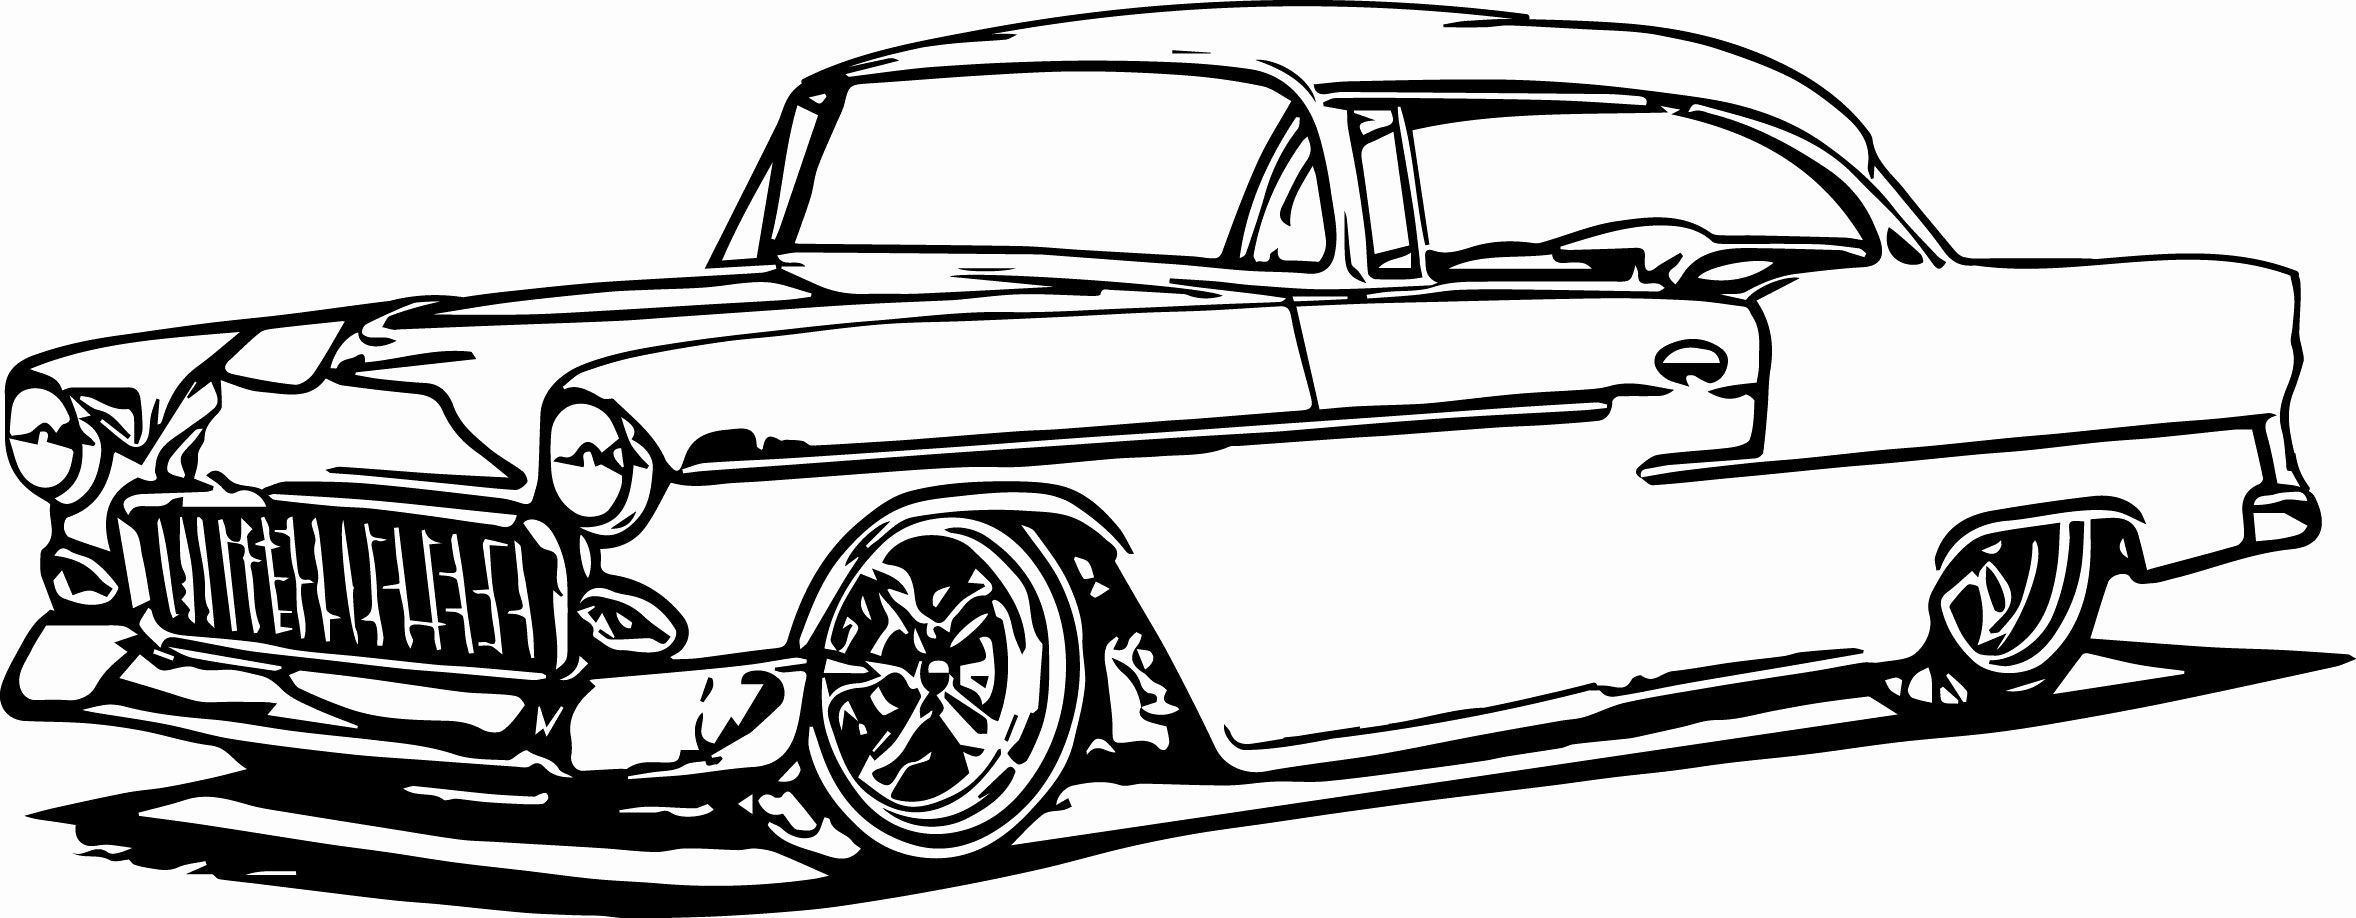 Car Coloring Book For Adults New Antique Car Coloring Pages Wecoloringpage Cars Coloring Pages Old School Cars Truck Coloring Pages